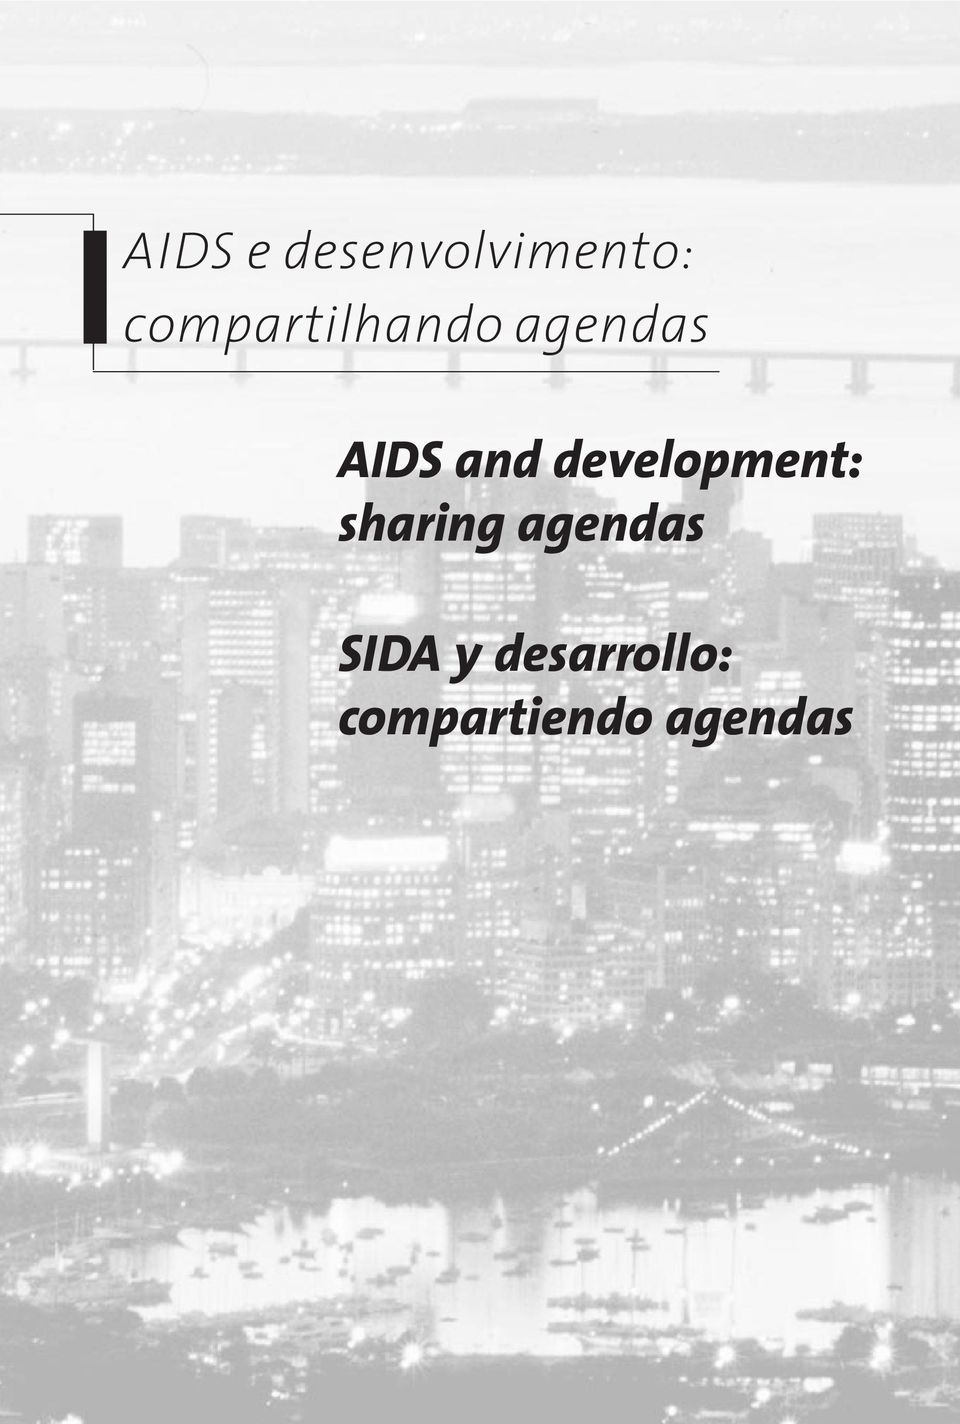 development: sharing agendas SIDA y